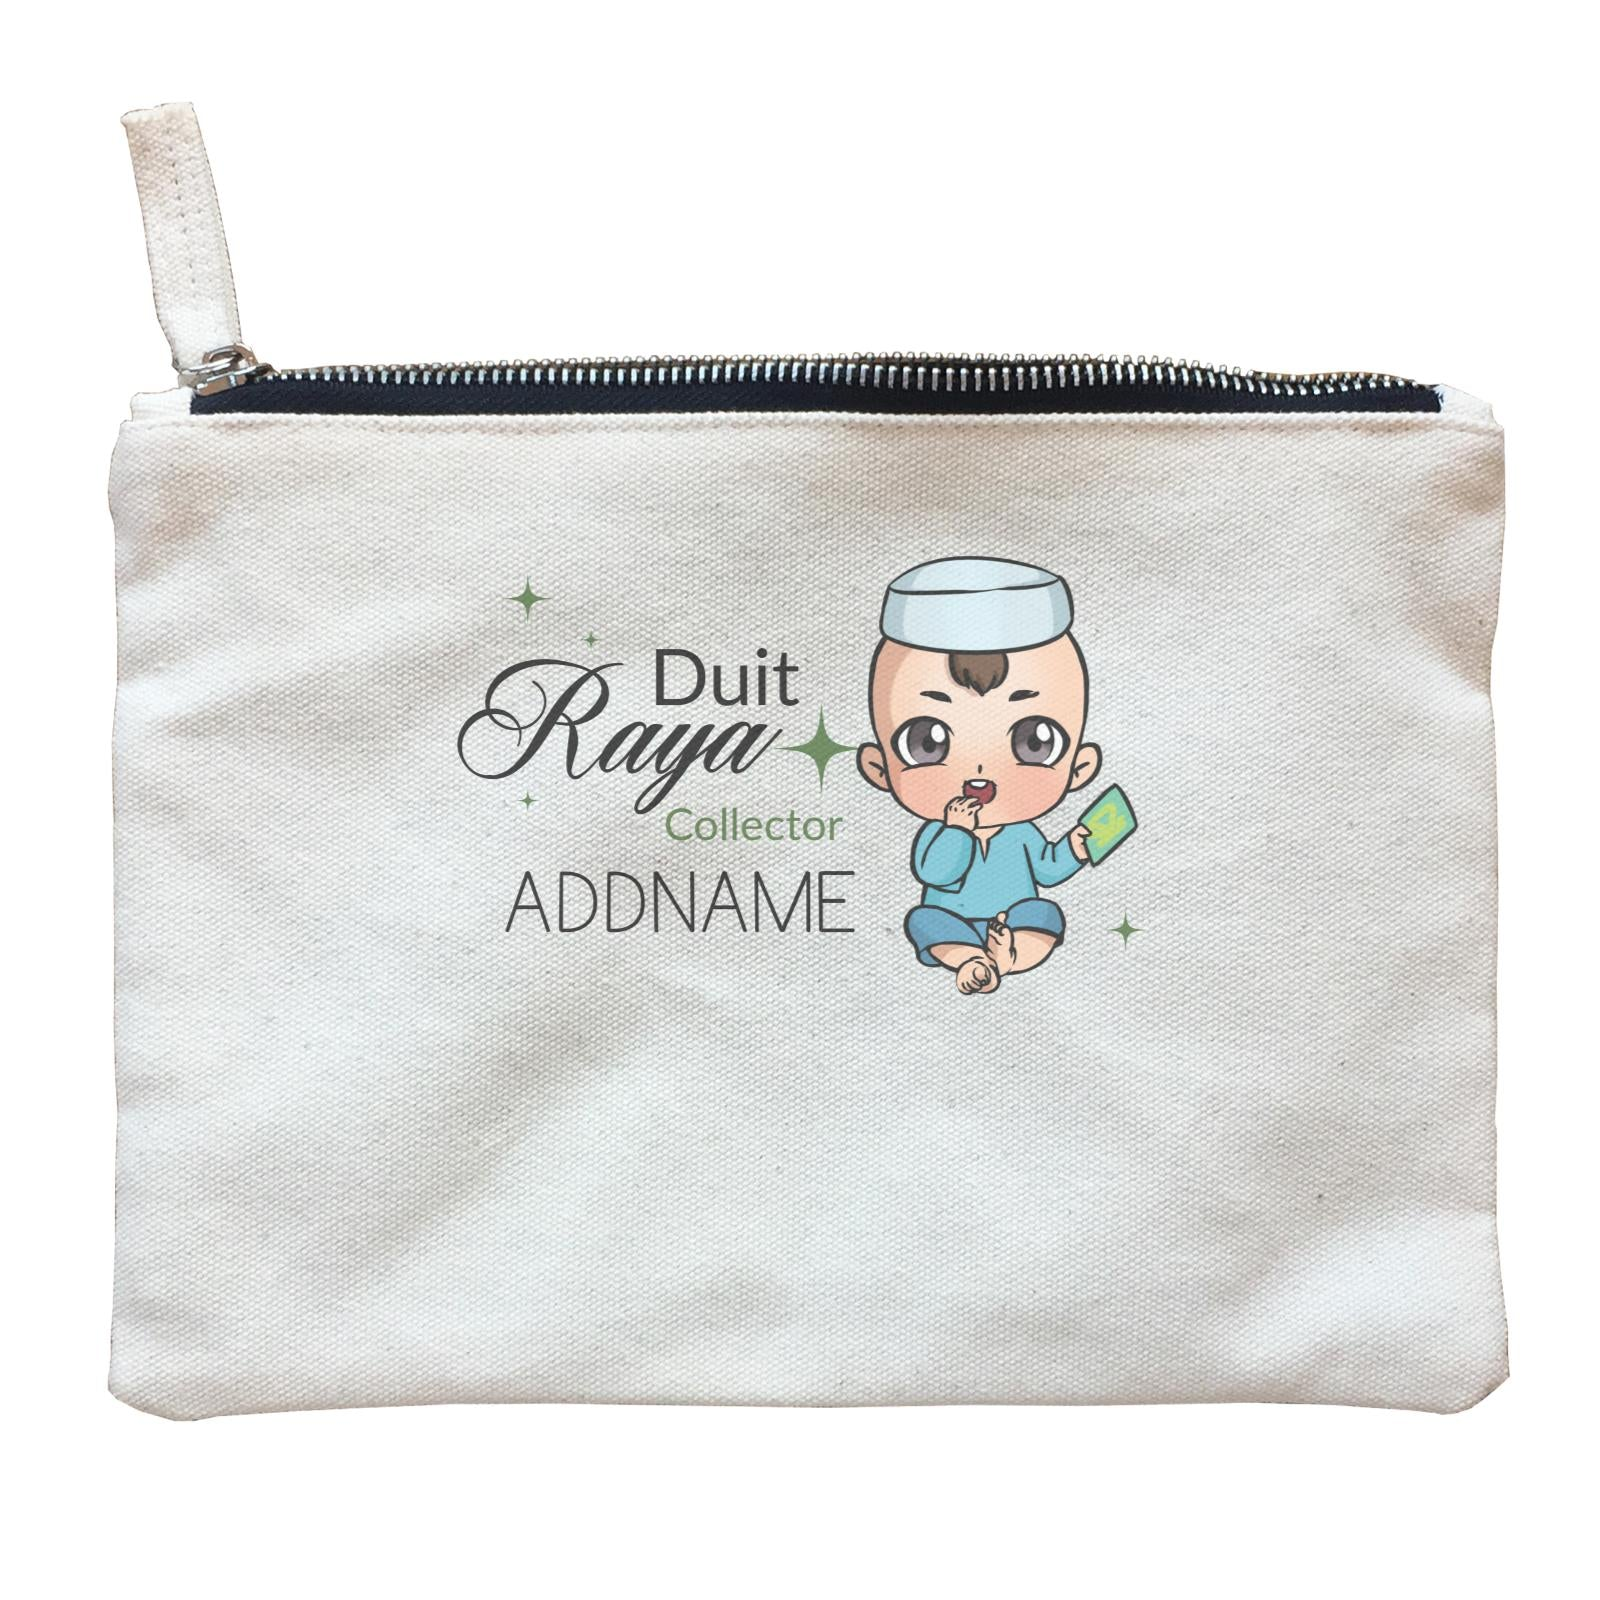 Raya Chibi Baby Baby Boy Duit Raya Collector Addname Zipper Pouch